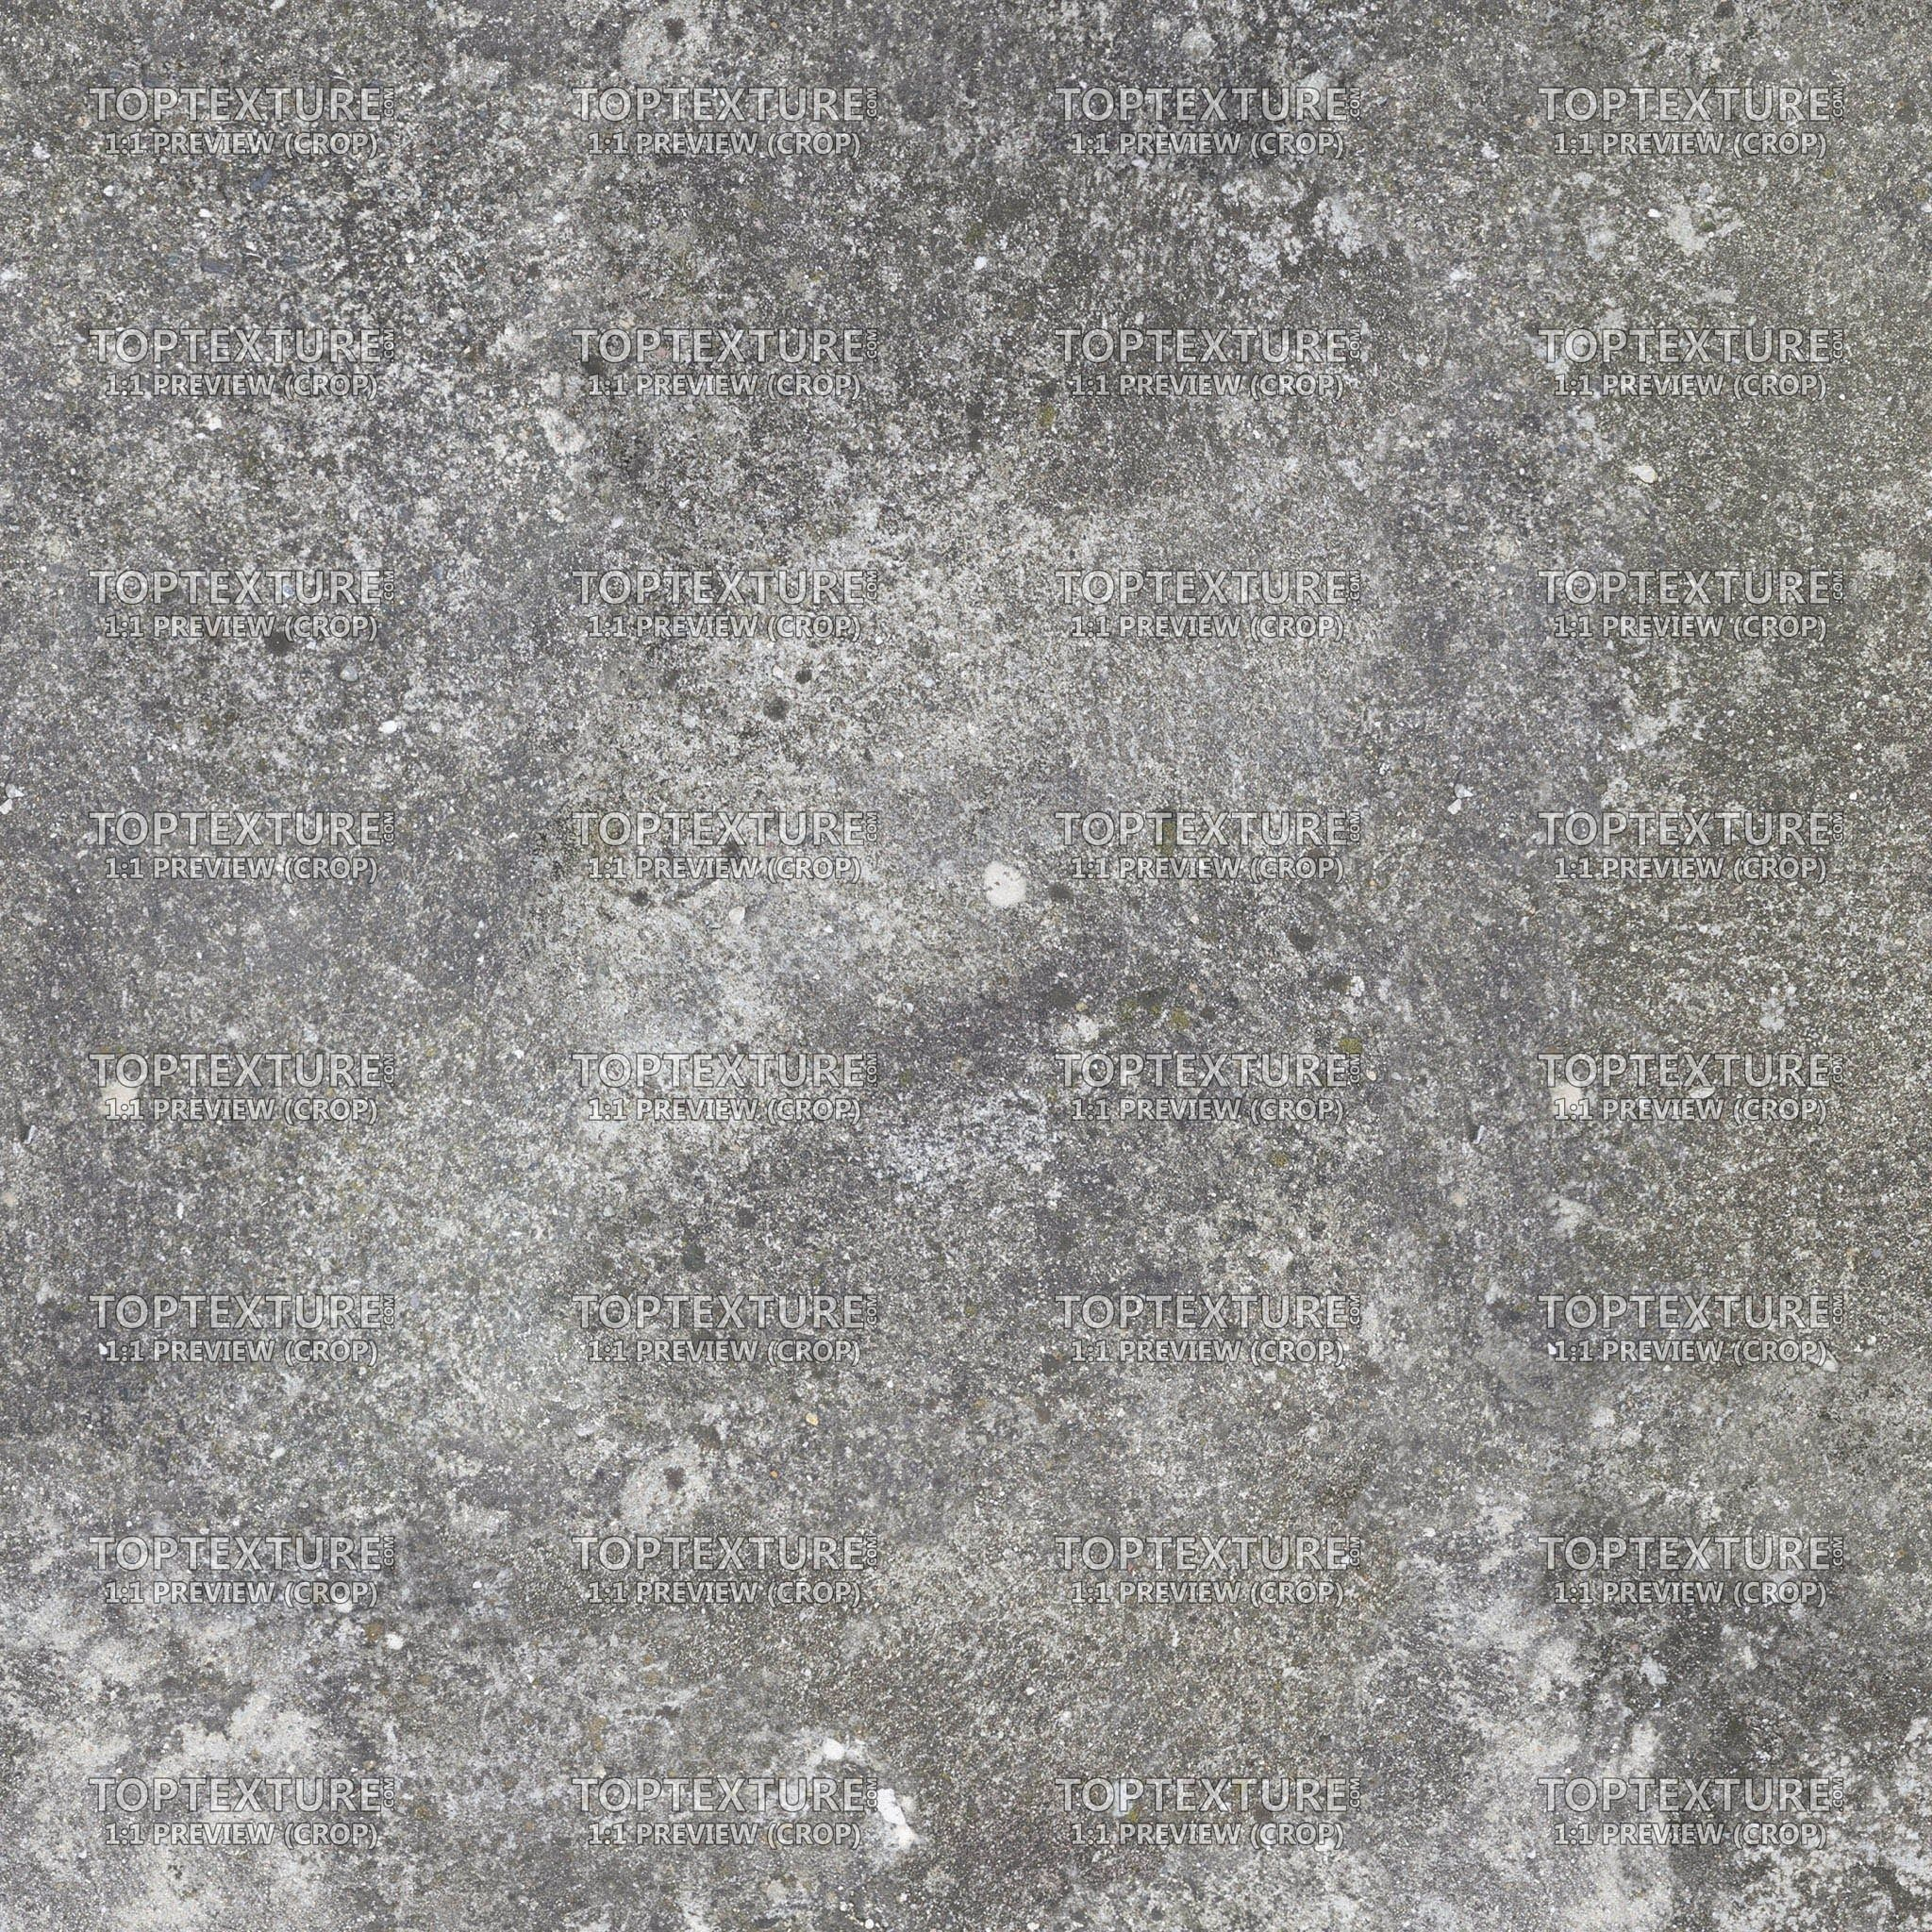 dirty concrete floor texture old dirty dirty dark concrete floor 100dirty concrete floor texture old dirty dirty dark concrete floor 100 zoom top texture dirty dark concrete floor top texture